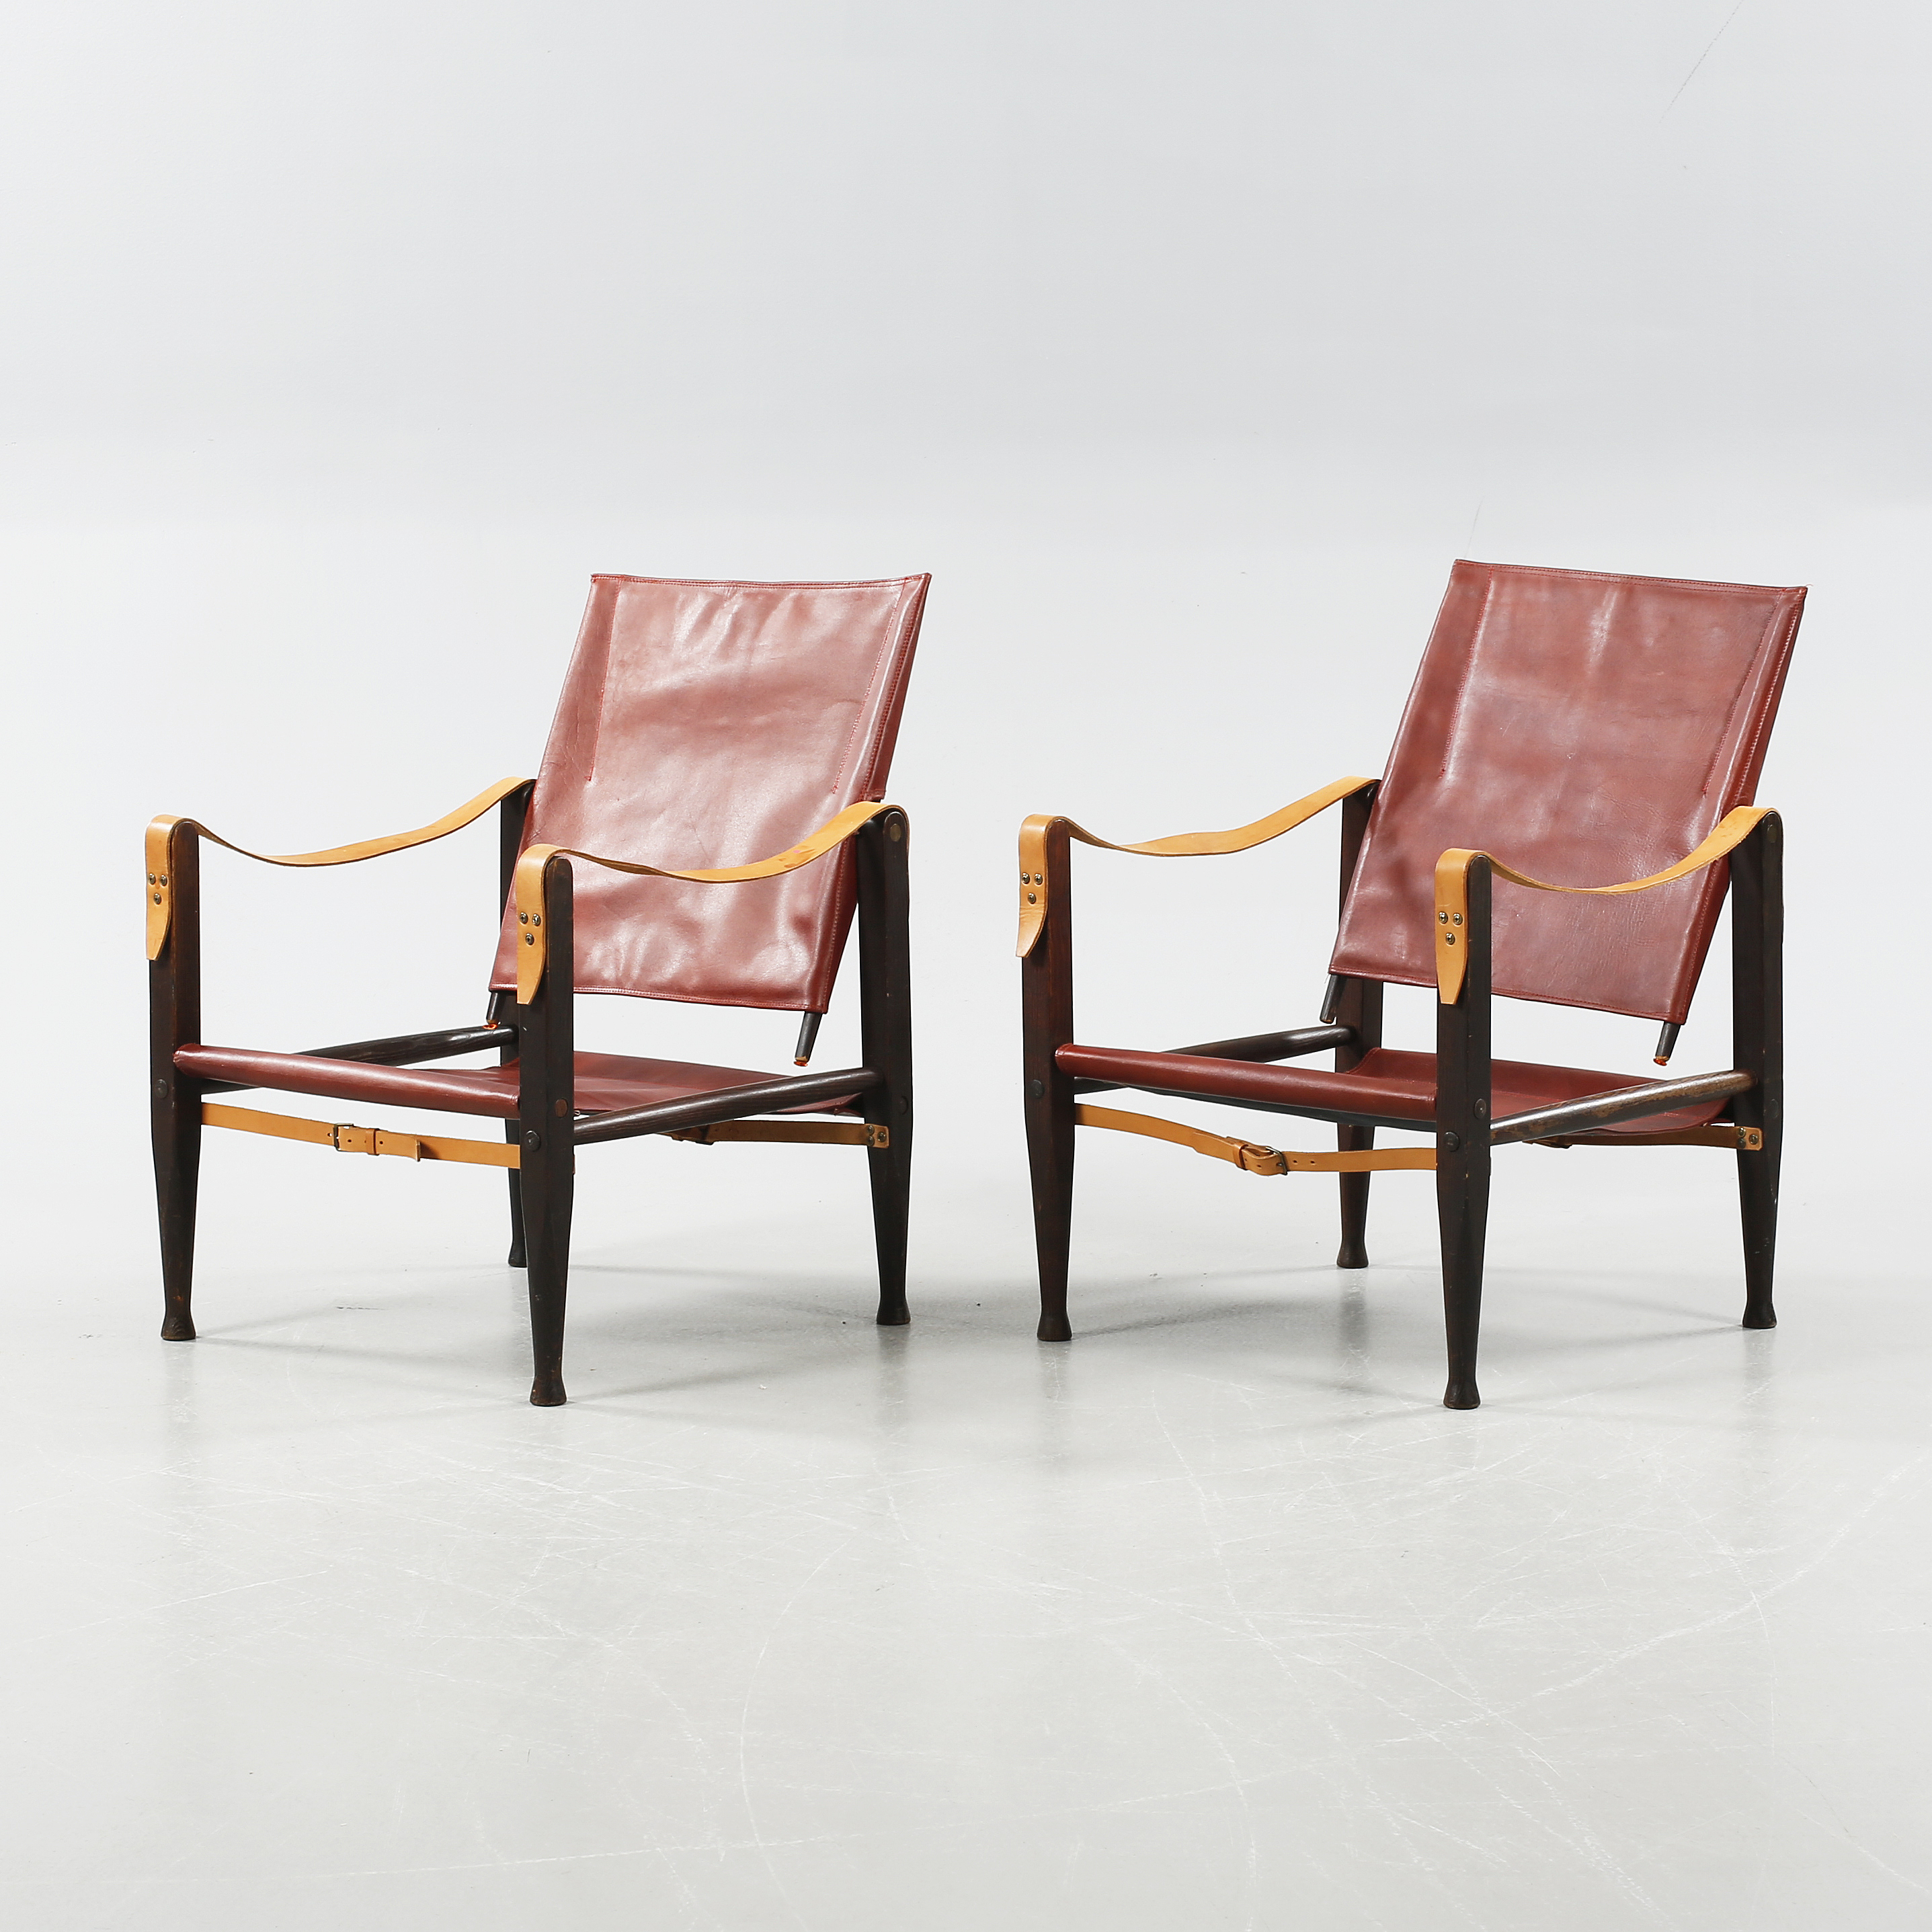 A pair of safari chairs by Kaare Klint Denmark second half of